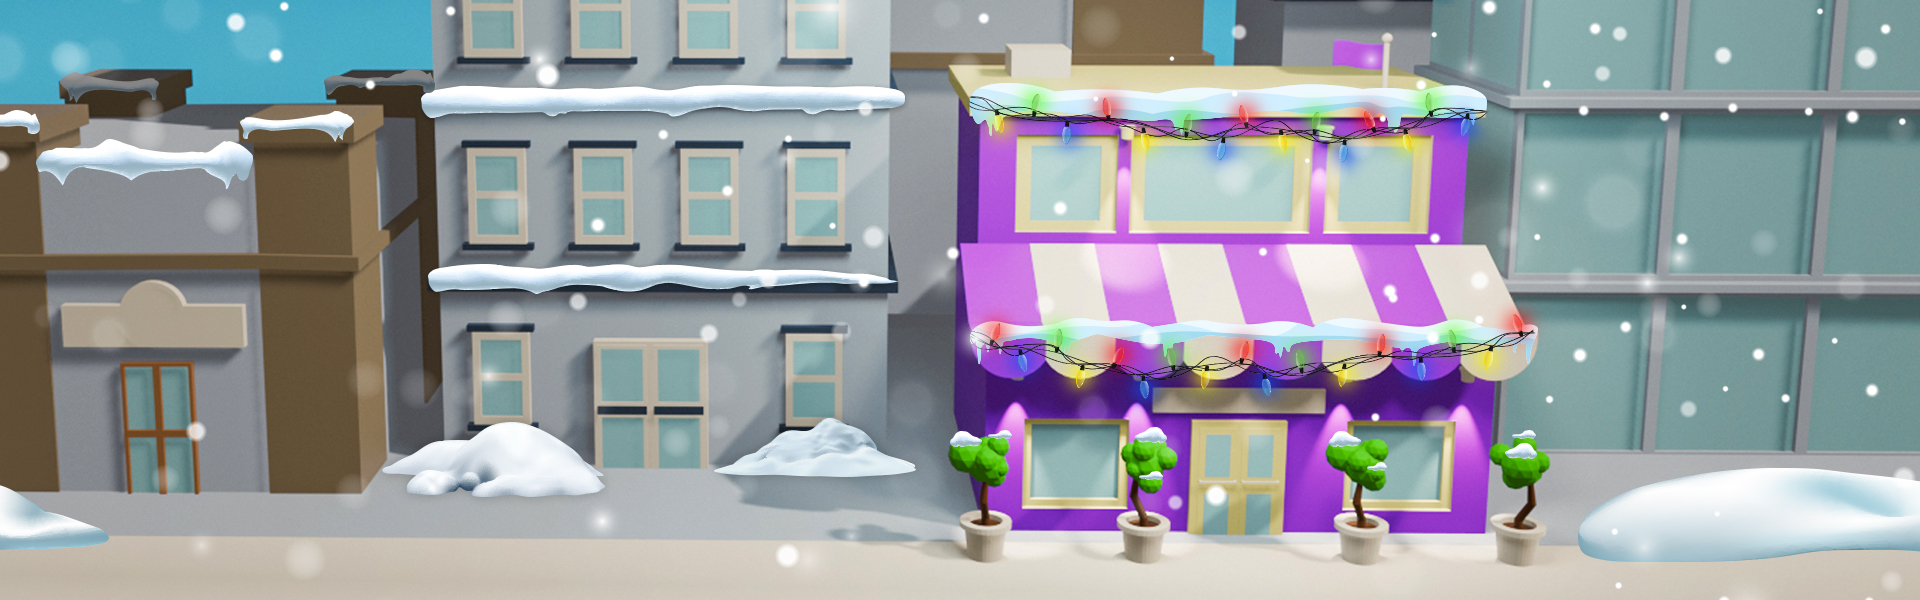 An illustration of a purple store with holiday lights and snow falling